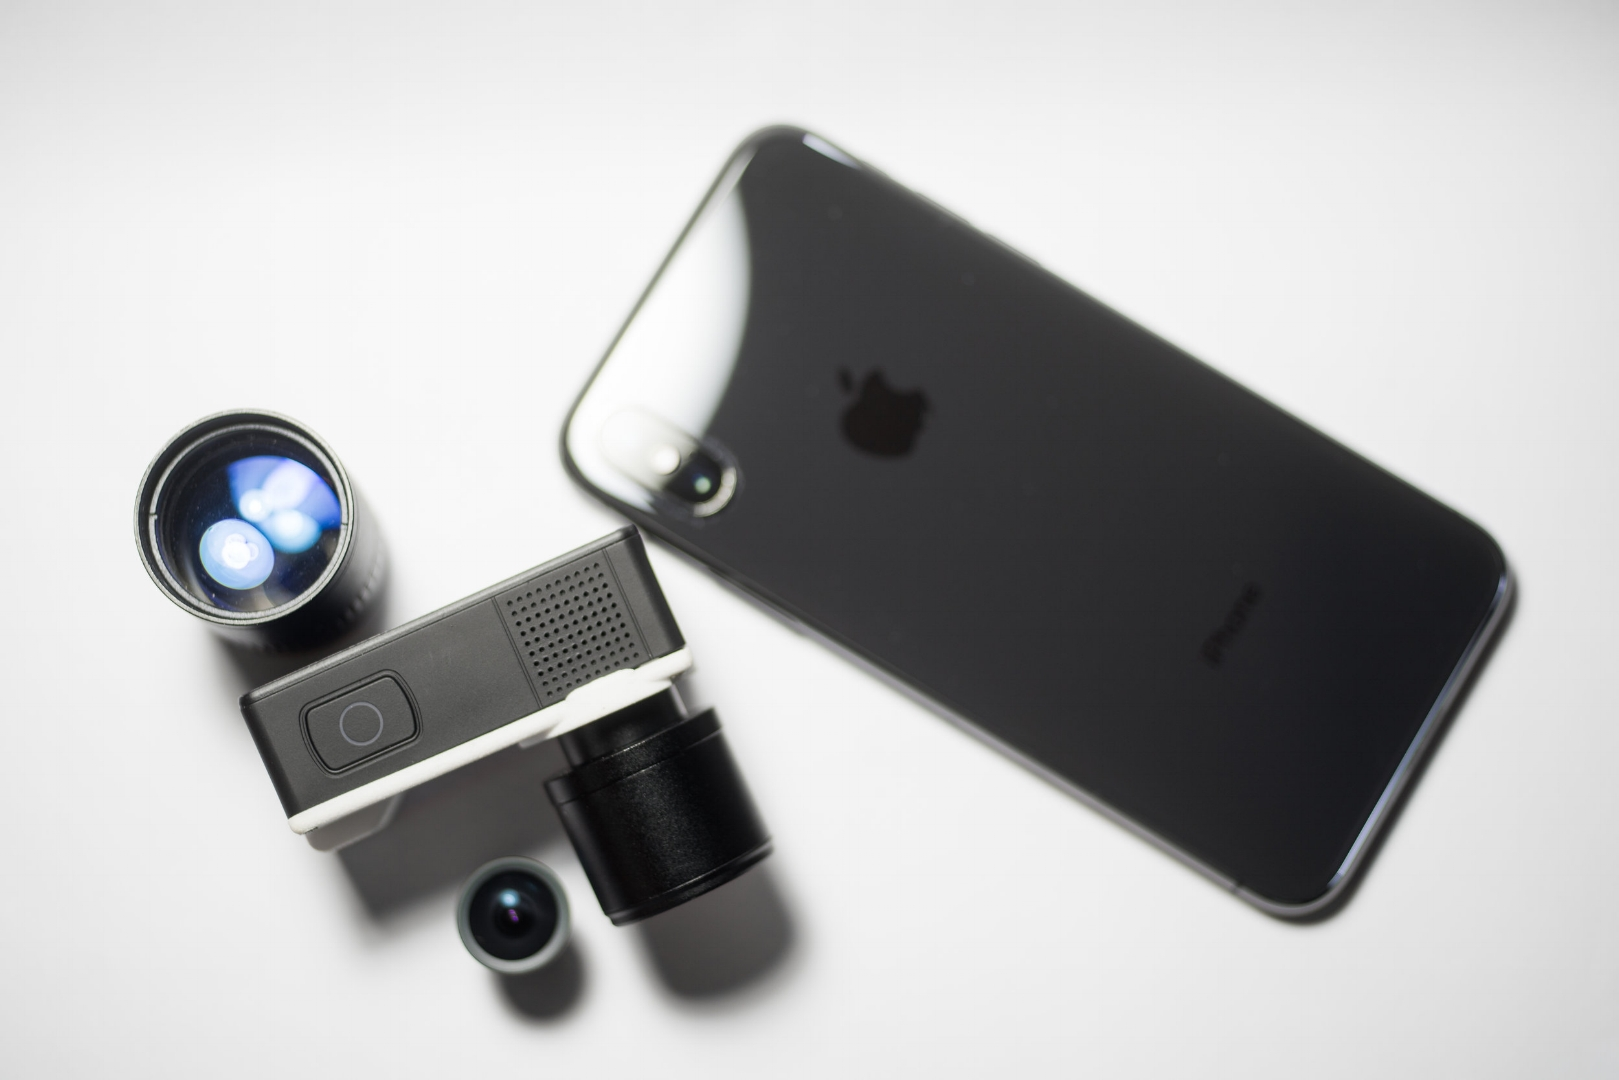 NANO1 with assorted lenses with Apple iPhone X (TM) for size comparison